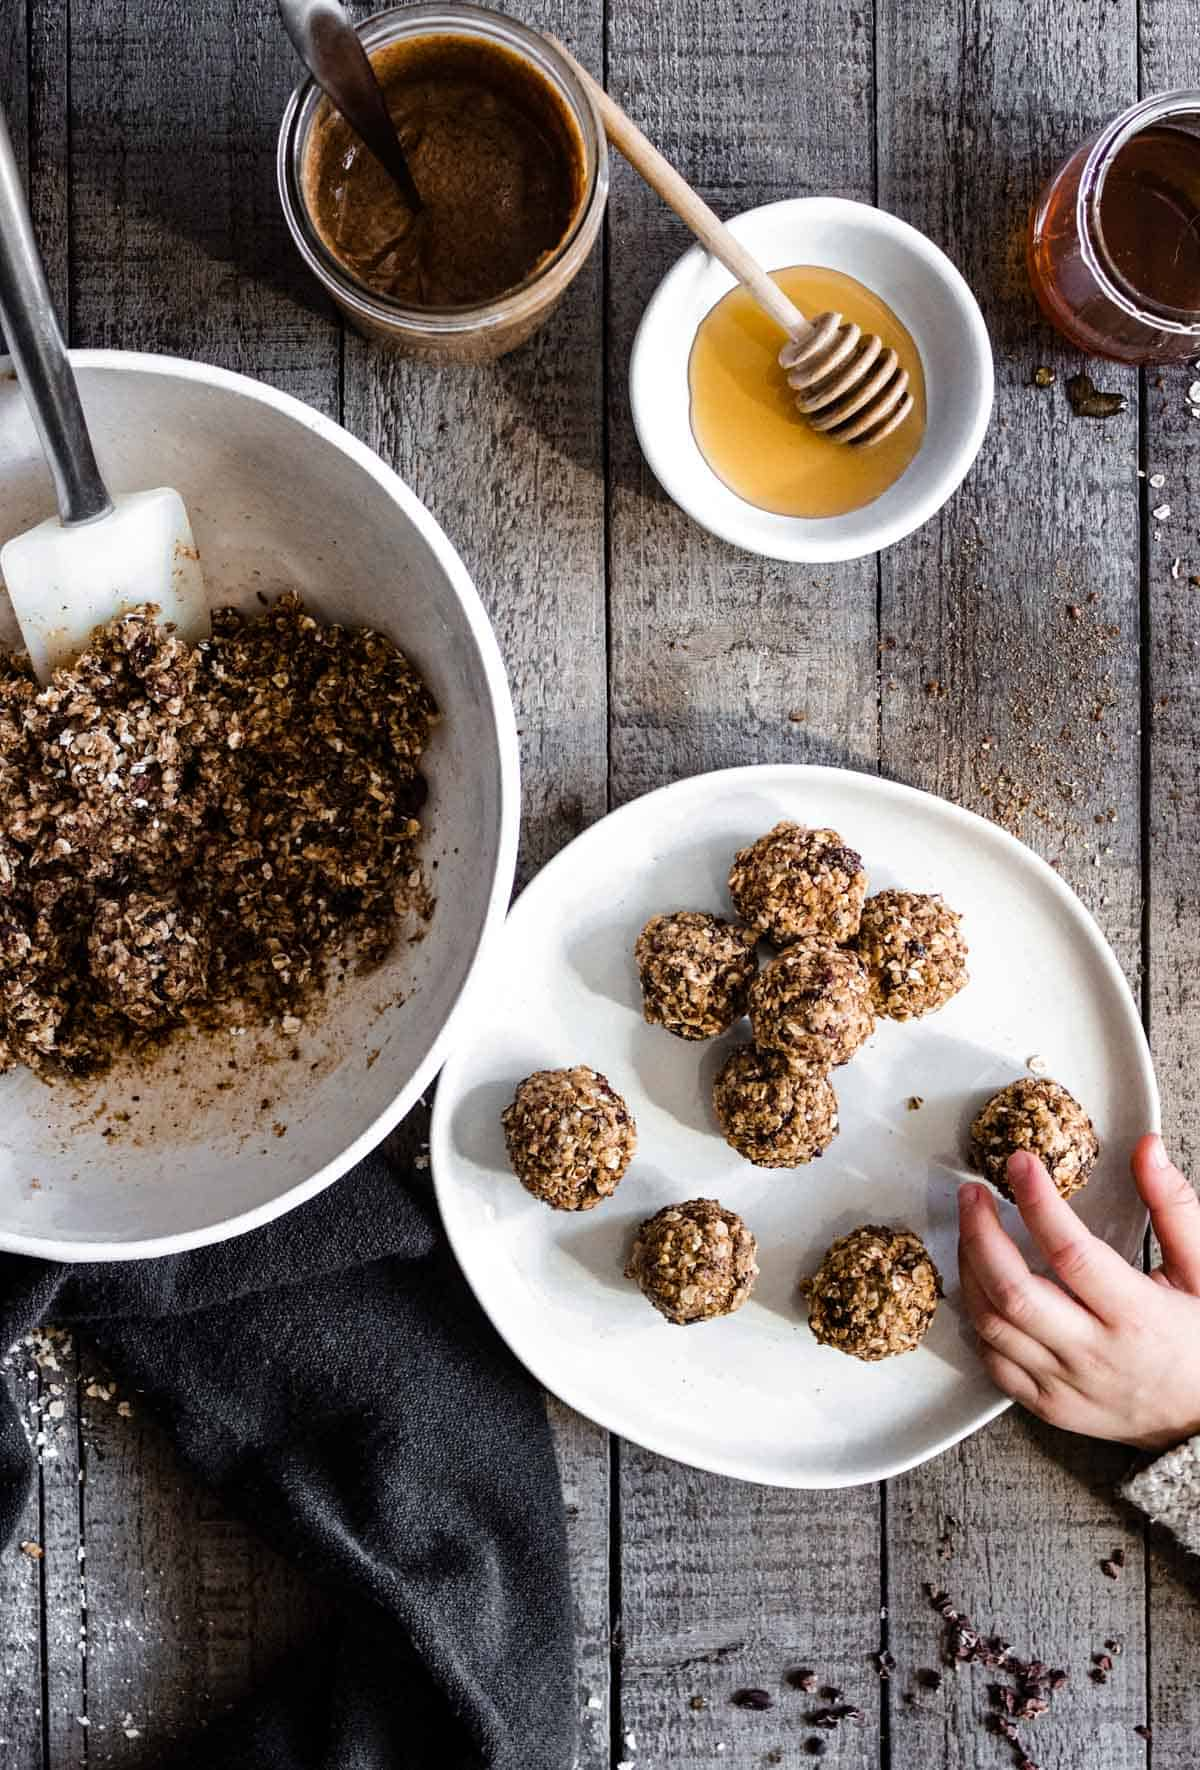 A child's hand is reaching toward a plate of no bake oatmeal cookie energy bites. Ingredients for the bites are placed nearby.